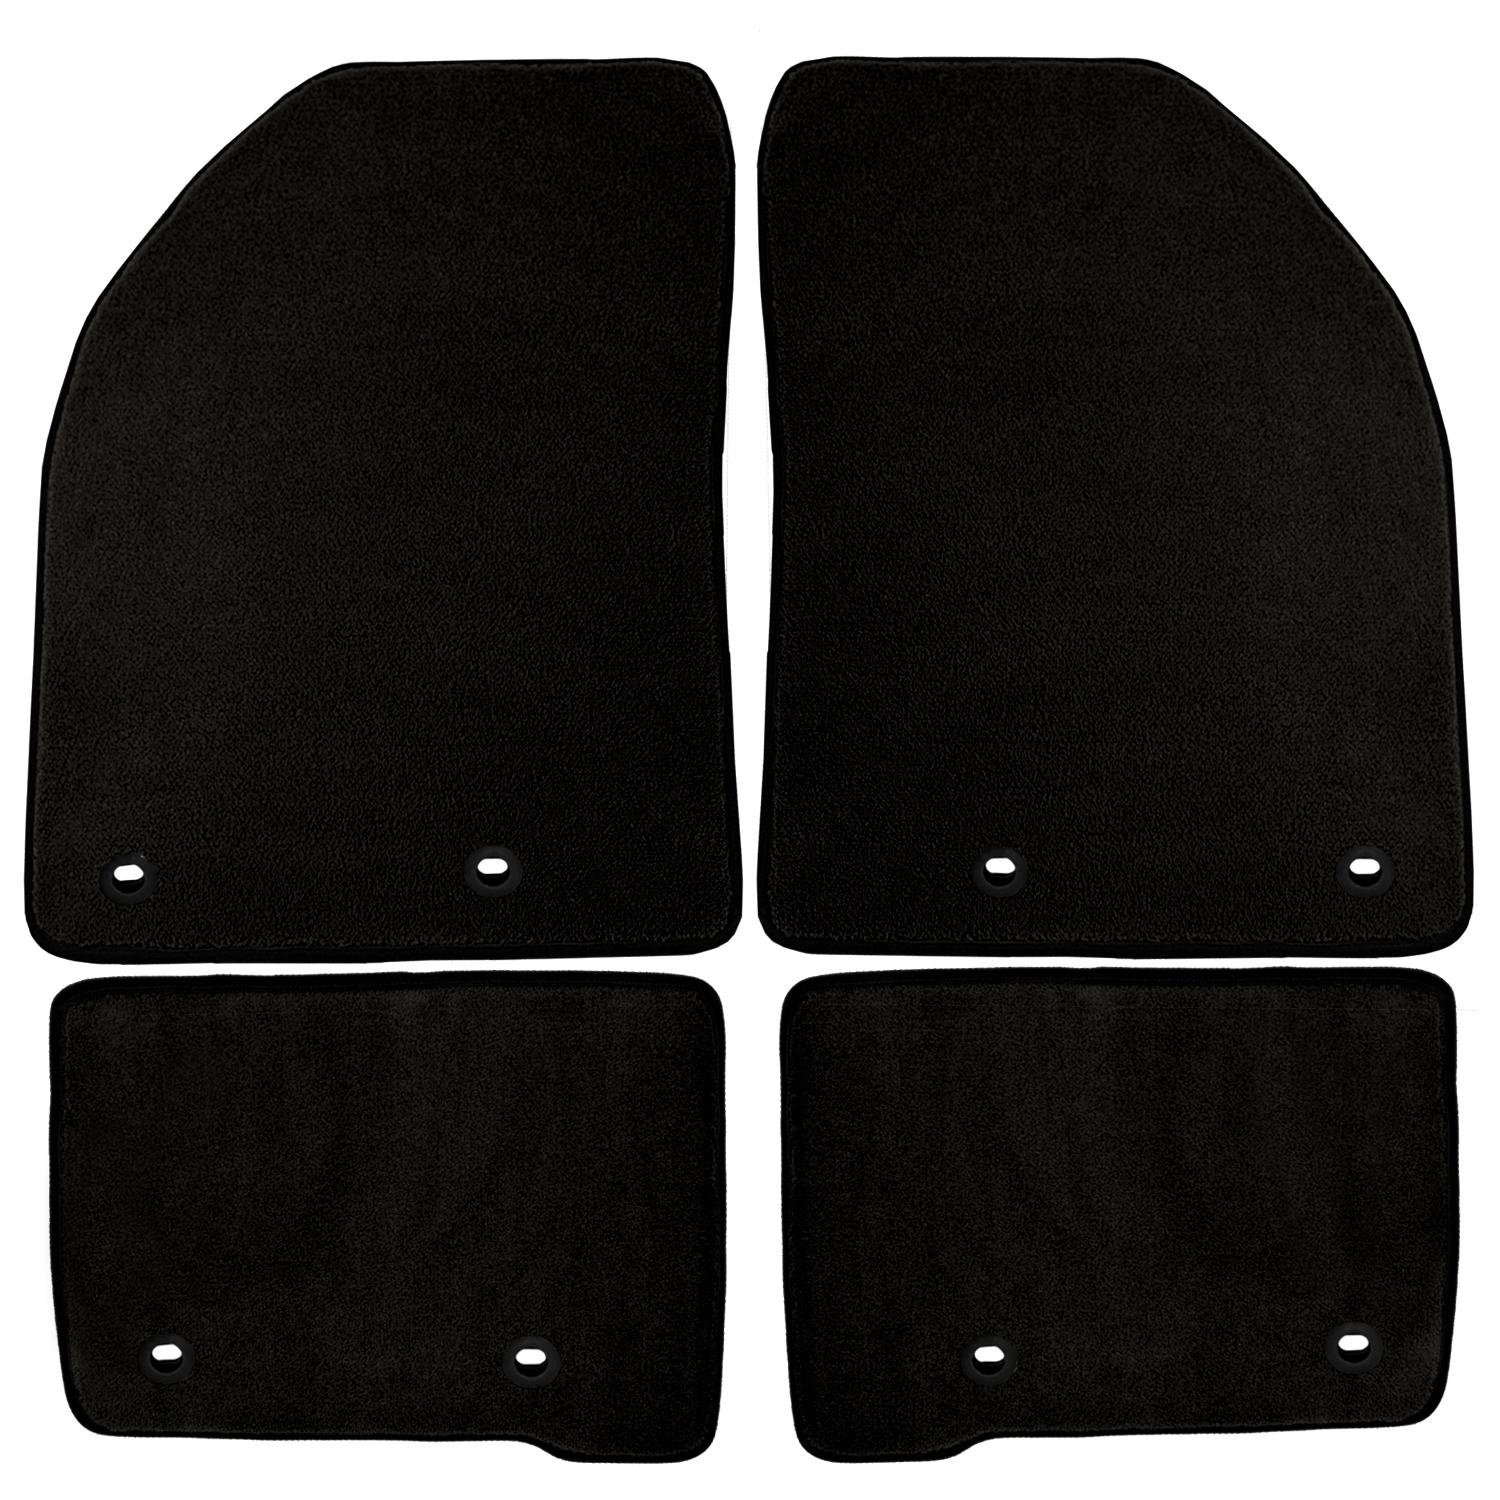 CFMBX1AC9336 Black Carpet 70 oz Coverking Front and Rear Floor Mats for Select Acura Integra Models